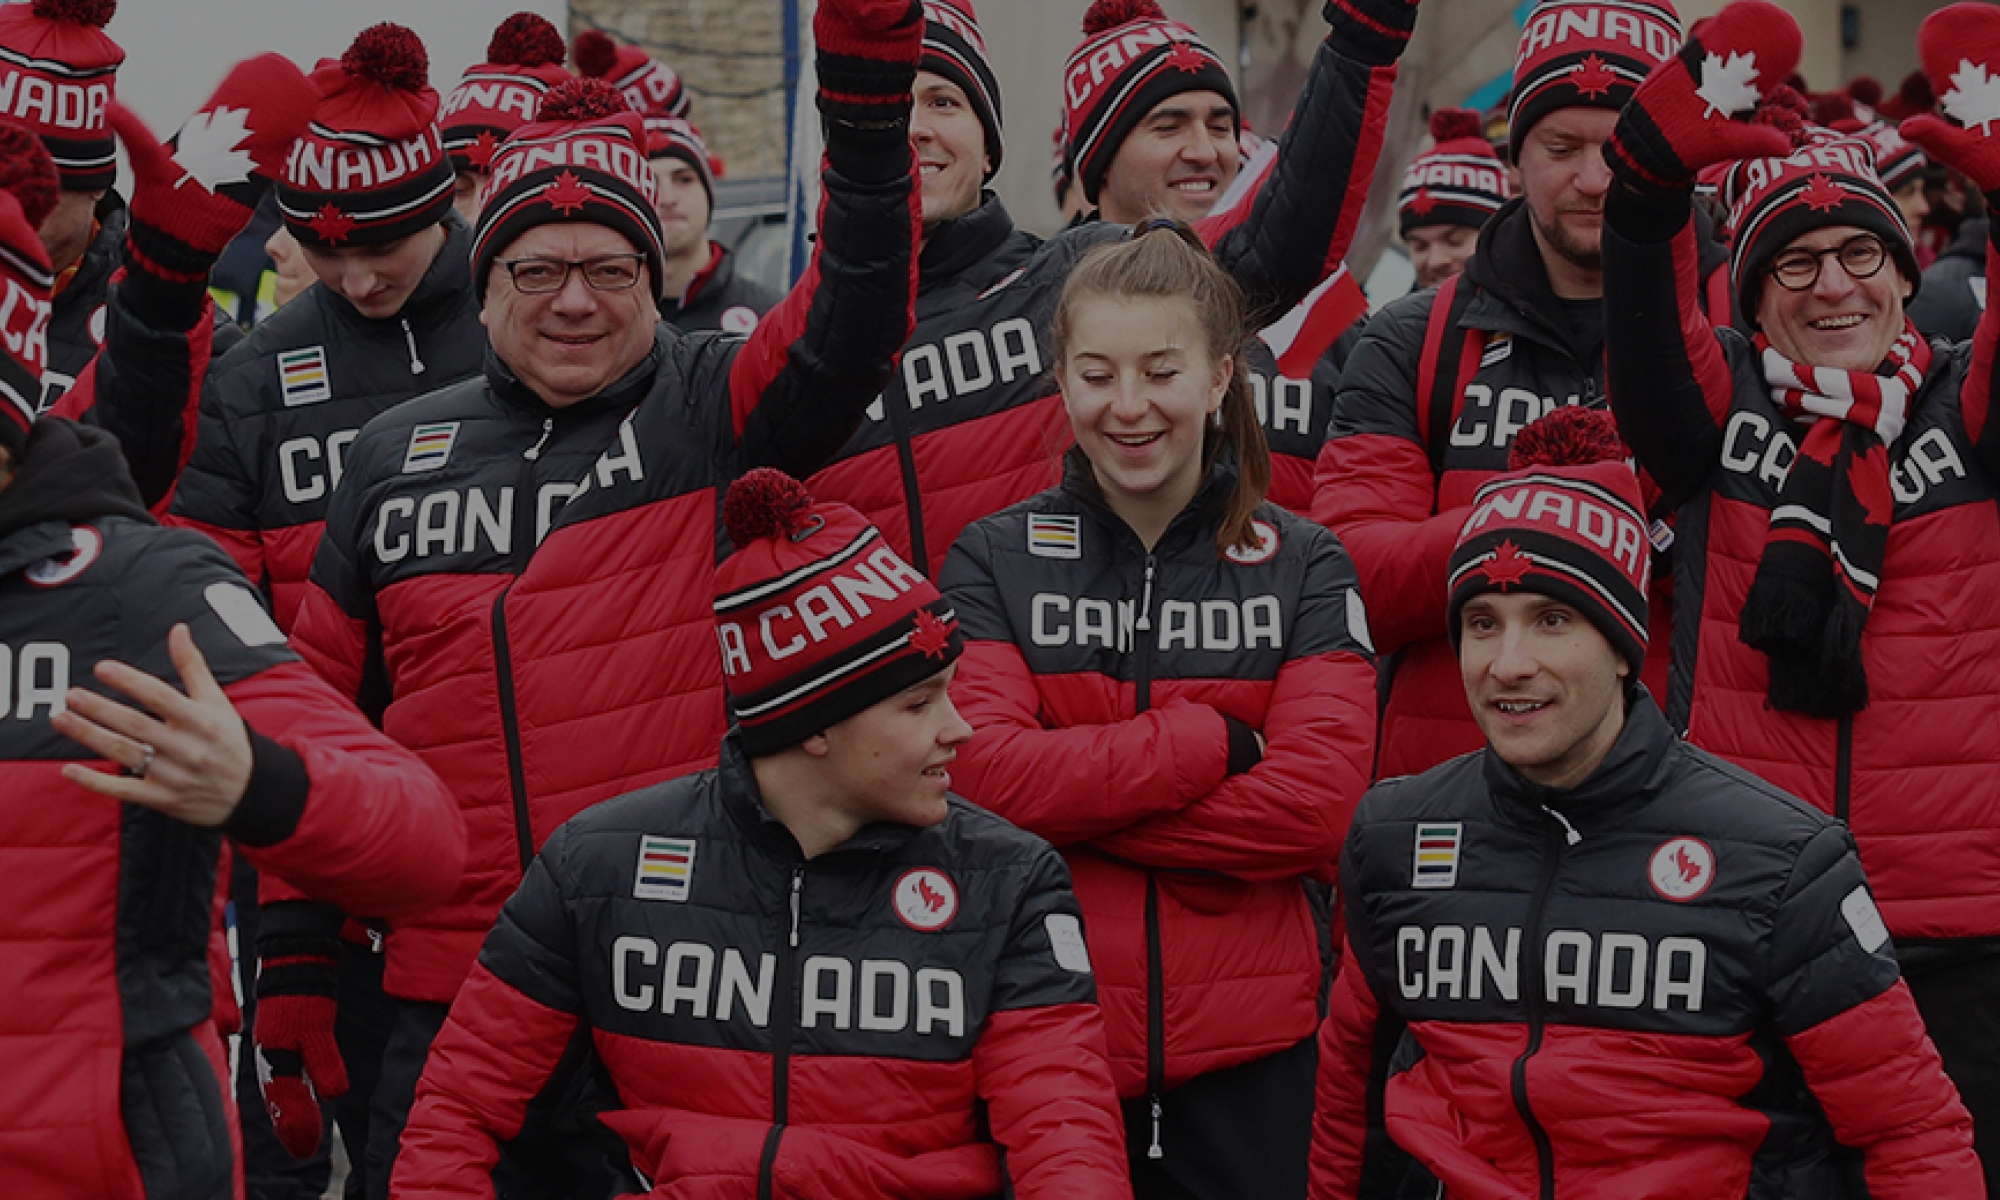 Canadian Team Walking into the stadium in PyeongChang